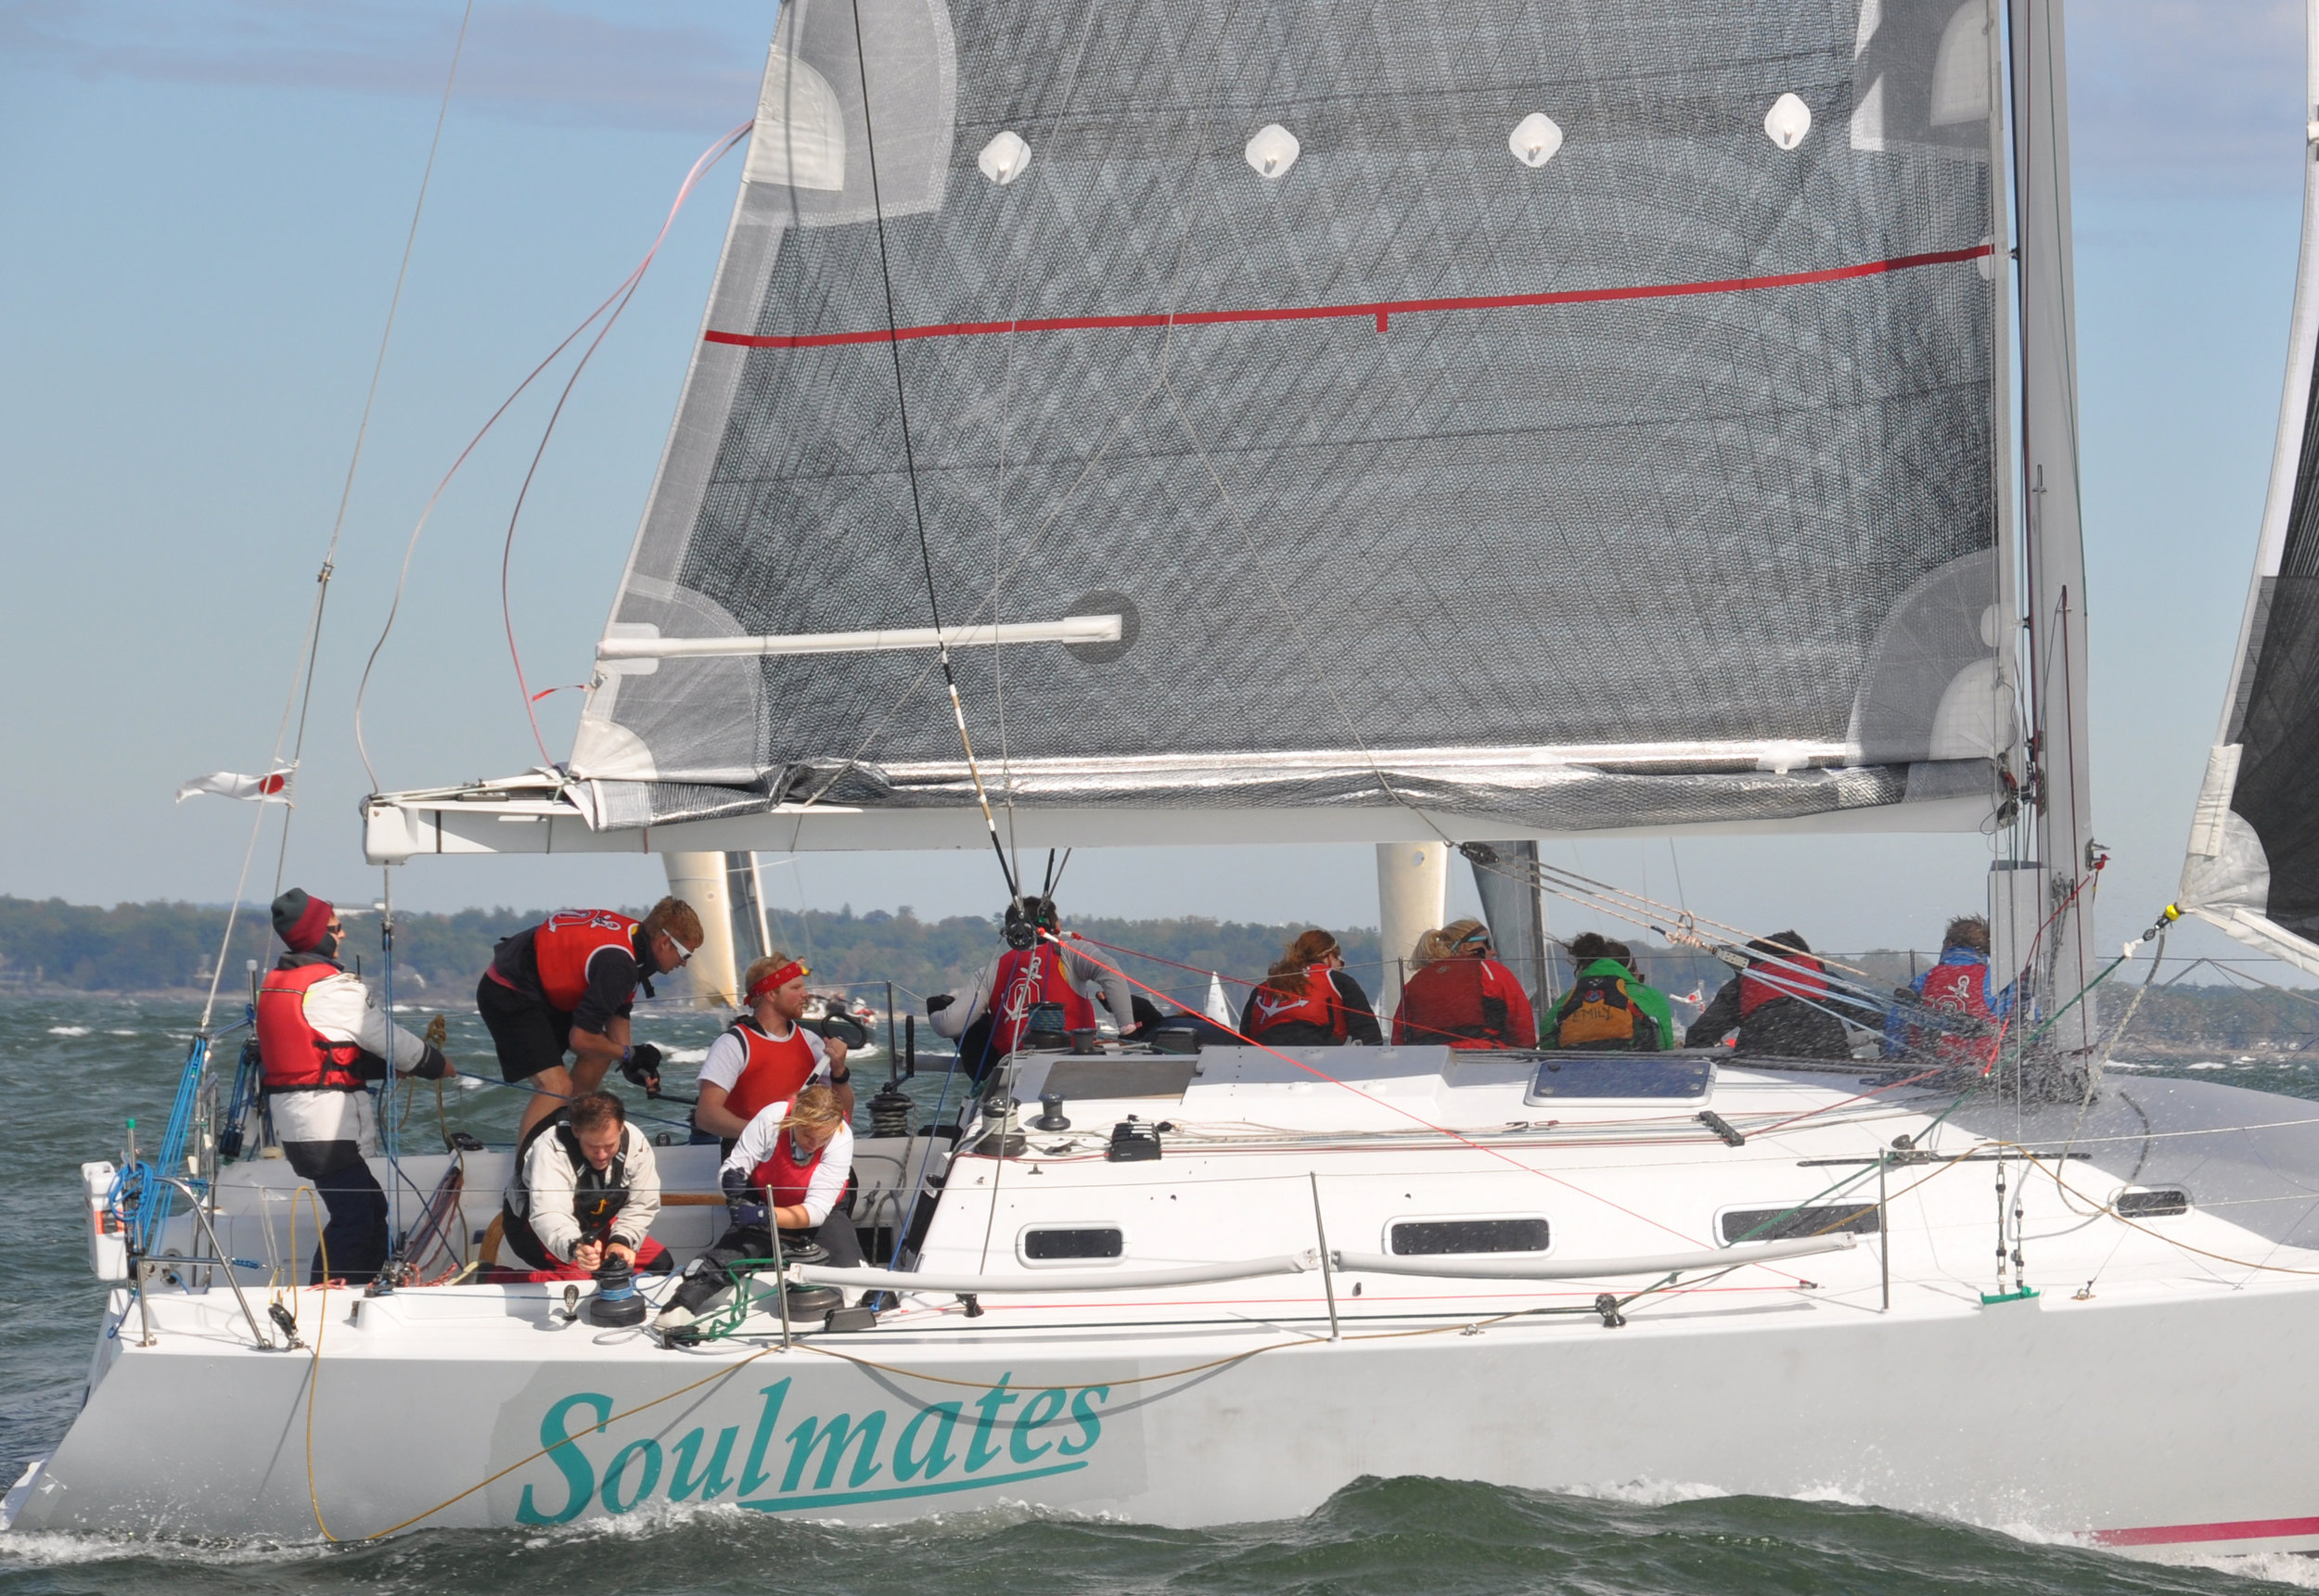 Photo 1 : Notice how tight the reefed foot is. Just the normal outhaul gets pulled tight when he breeze it up to flatten the main, the reef outhaul has to be tight to flatten the sail.